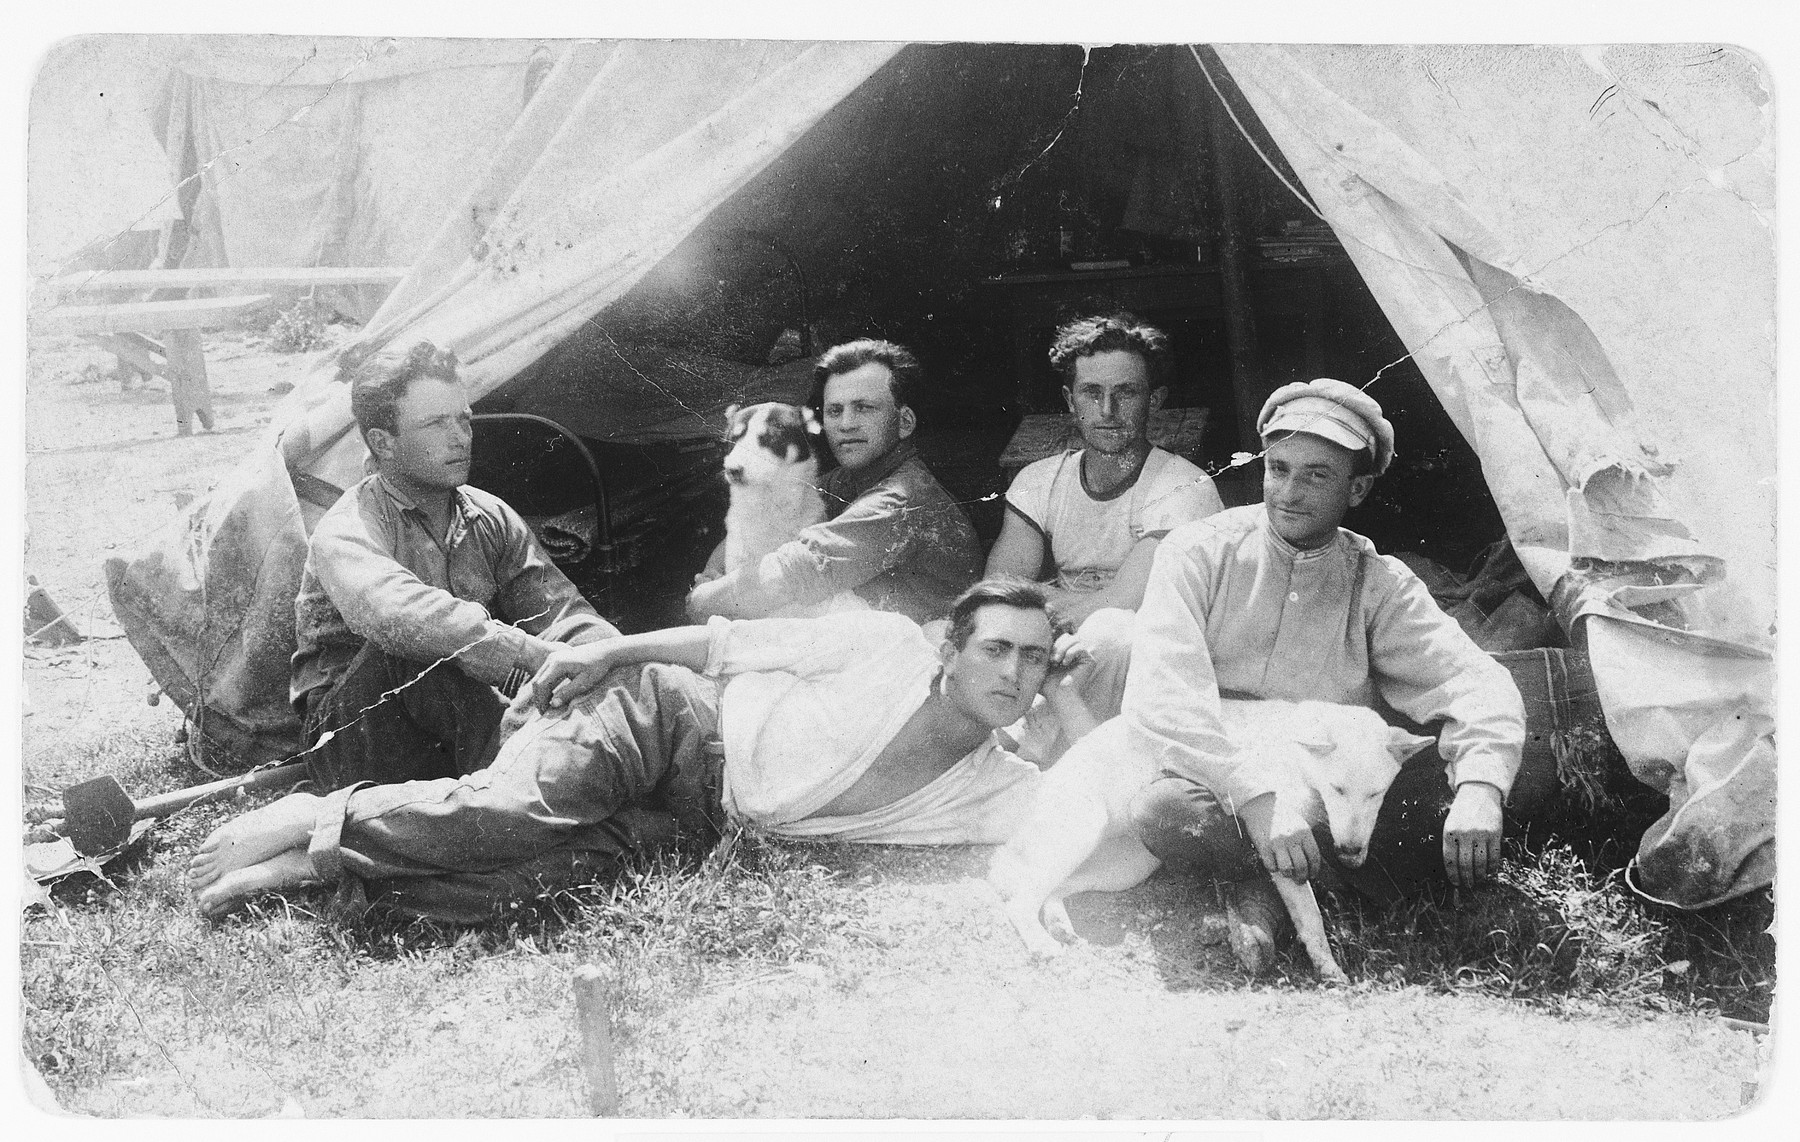 New pioneers pose next to their tent in a kibbutz in Palestine.  Among those pictured is Avraham Wagner.